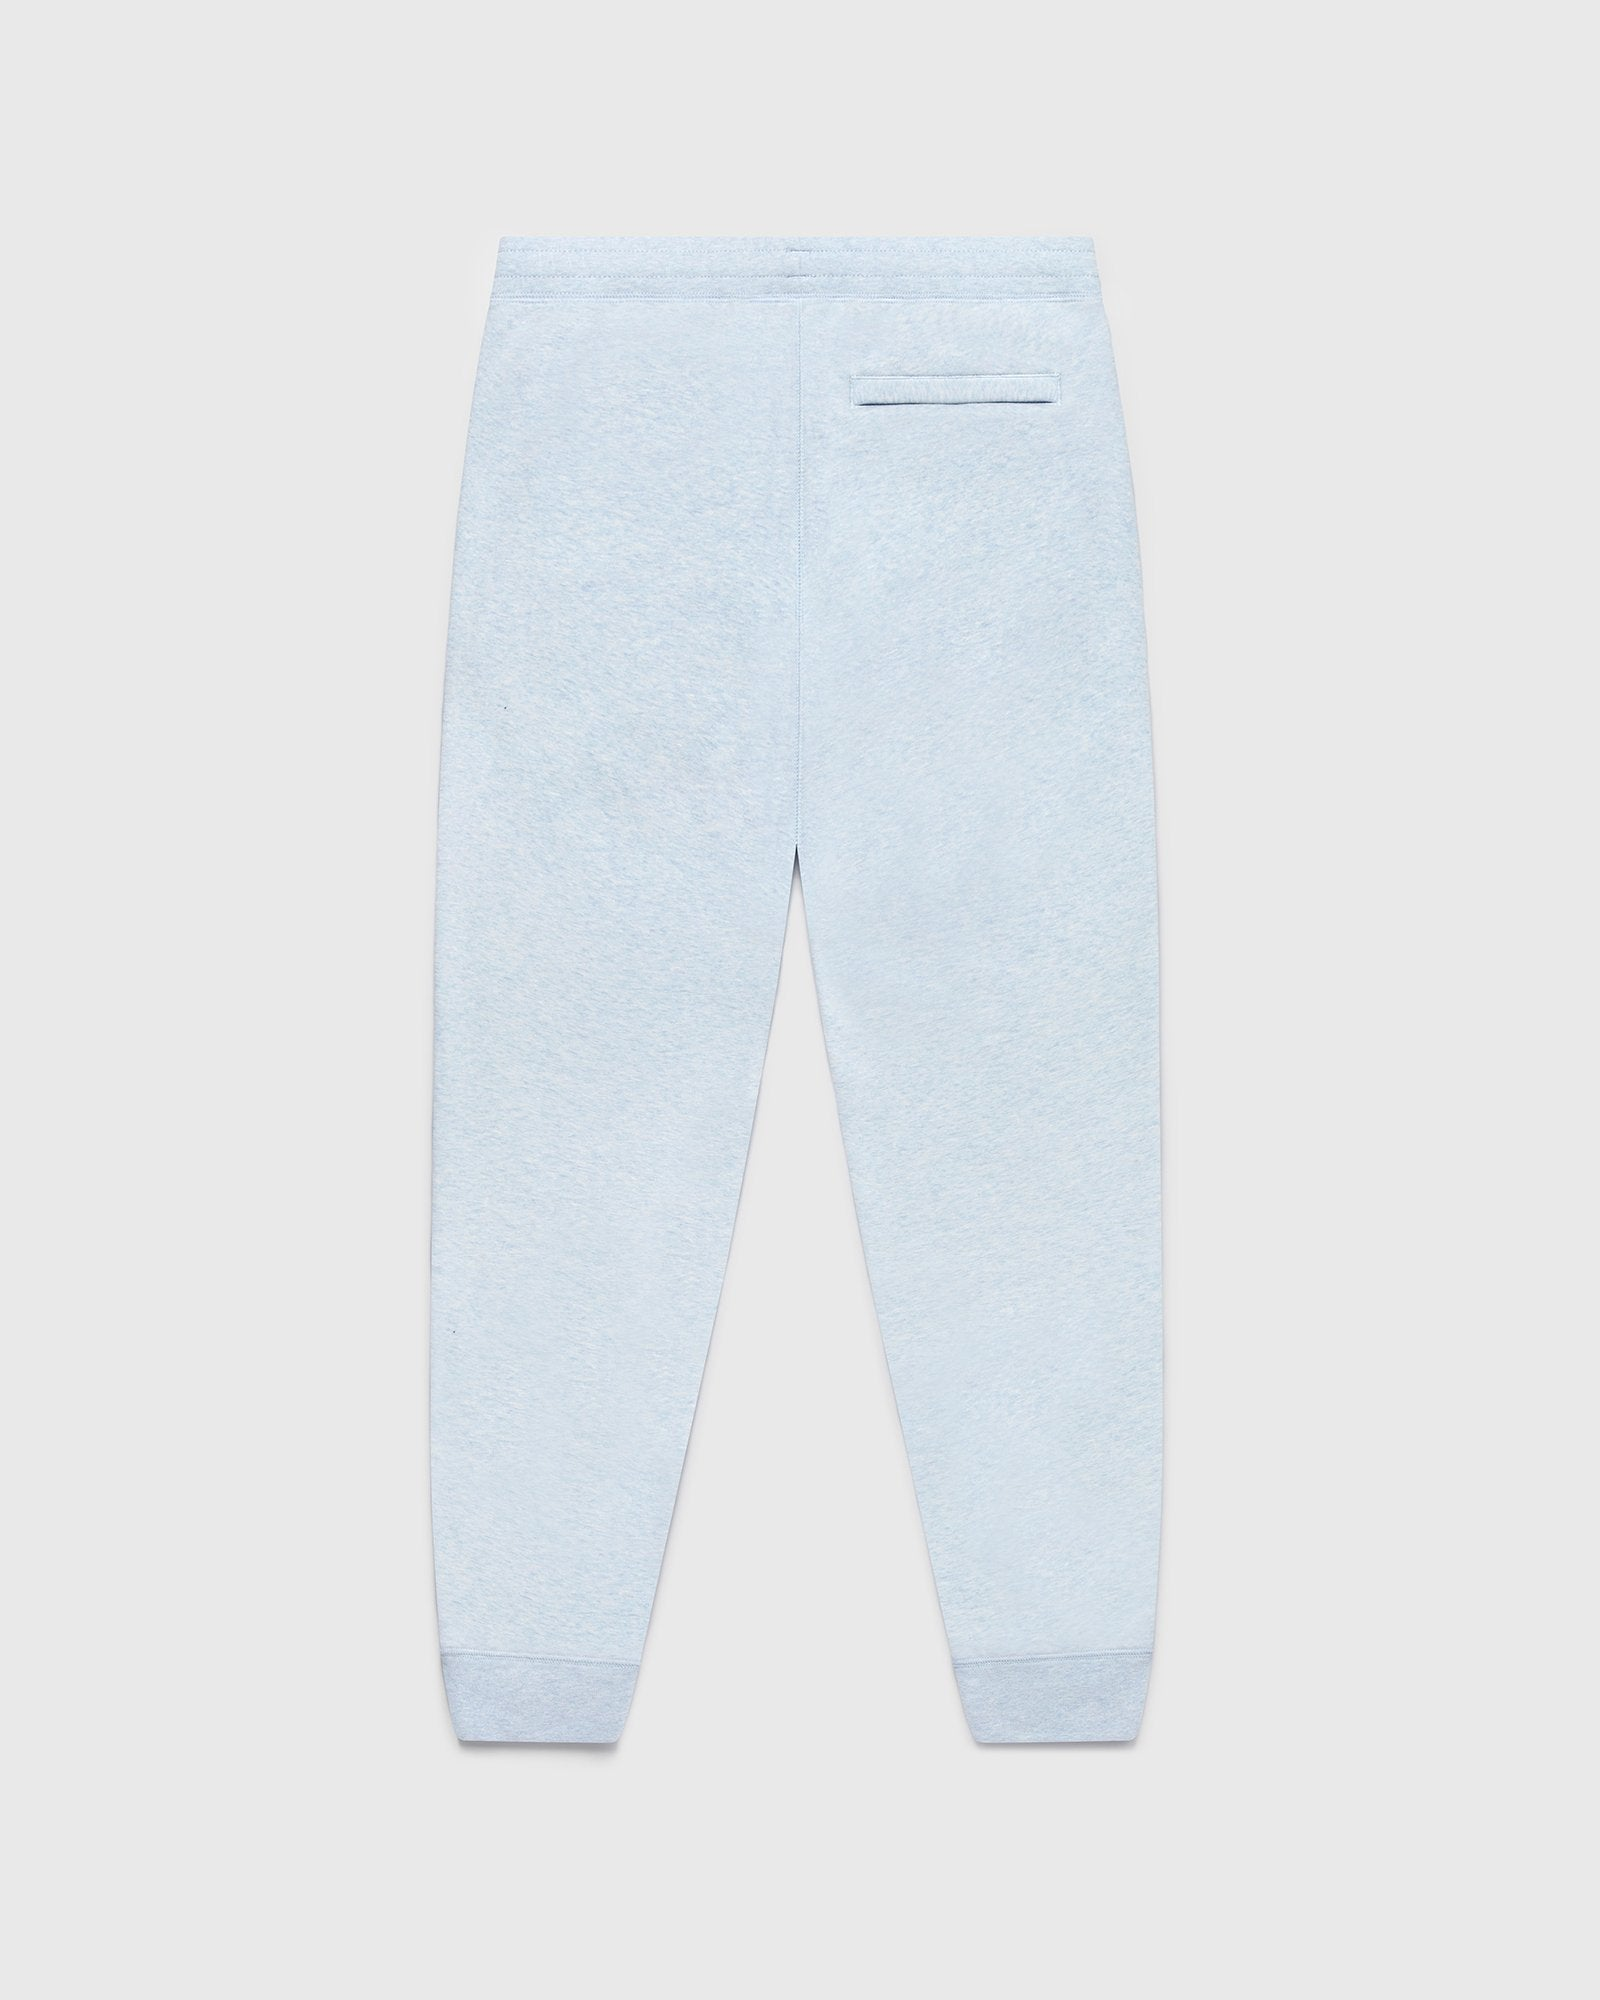 OWL PLUSH SWEATPANT - SKY BLUE IMAGE #2